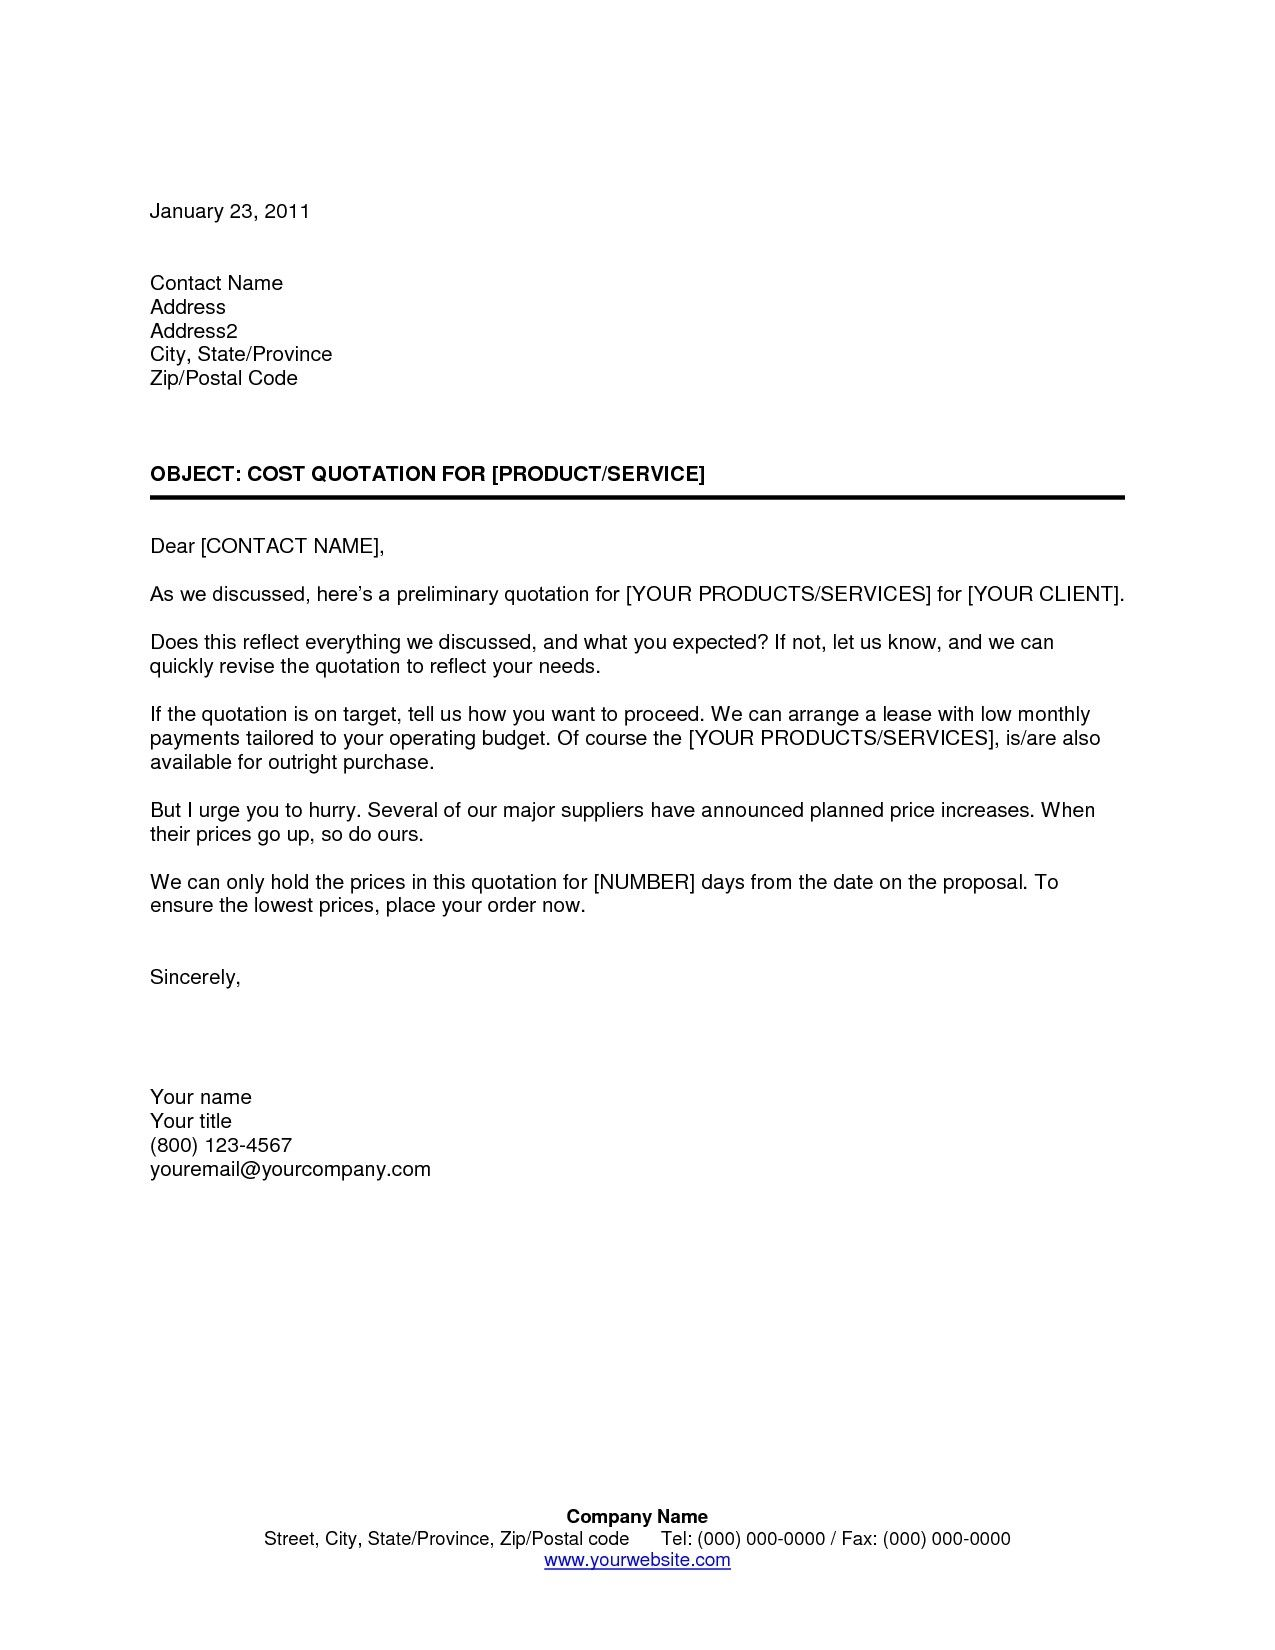 Cover Letter Quotation Template